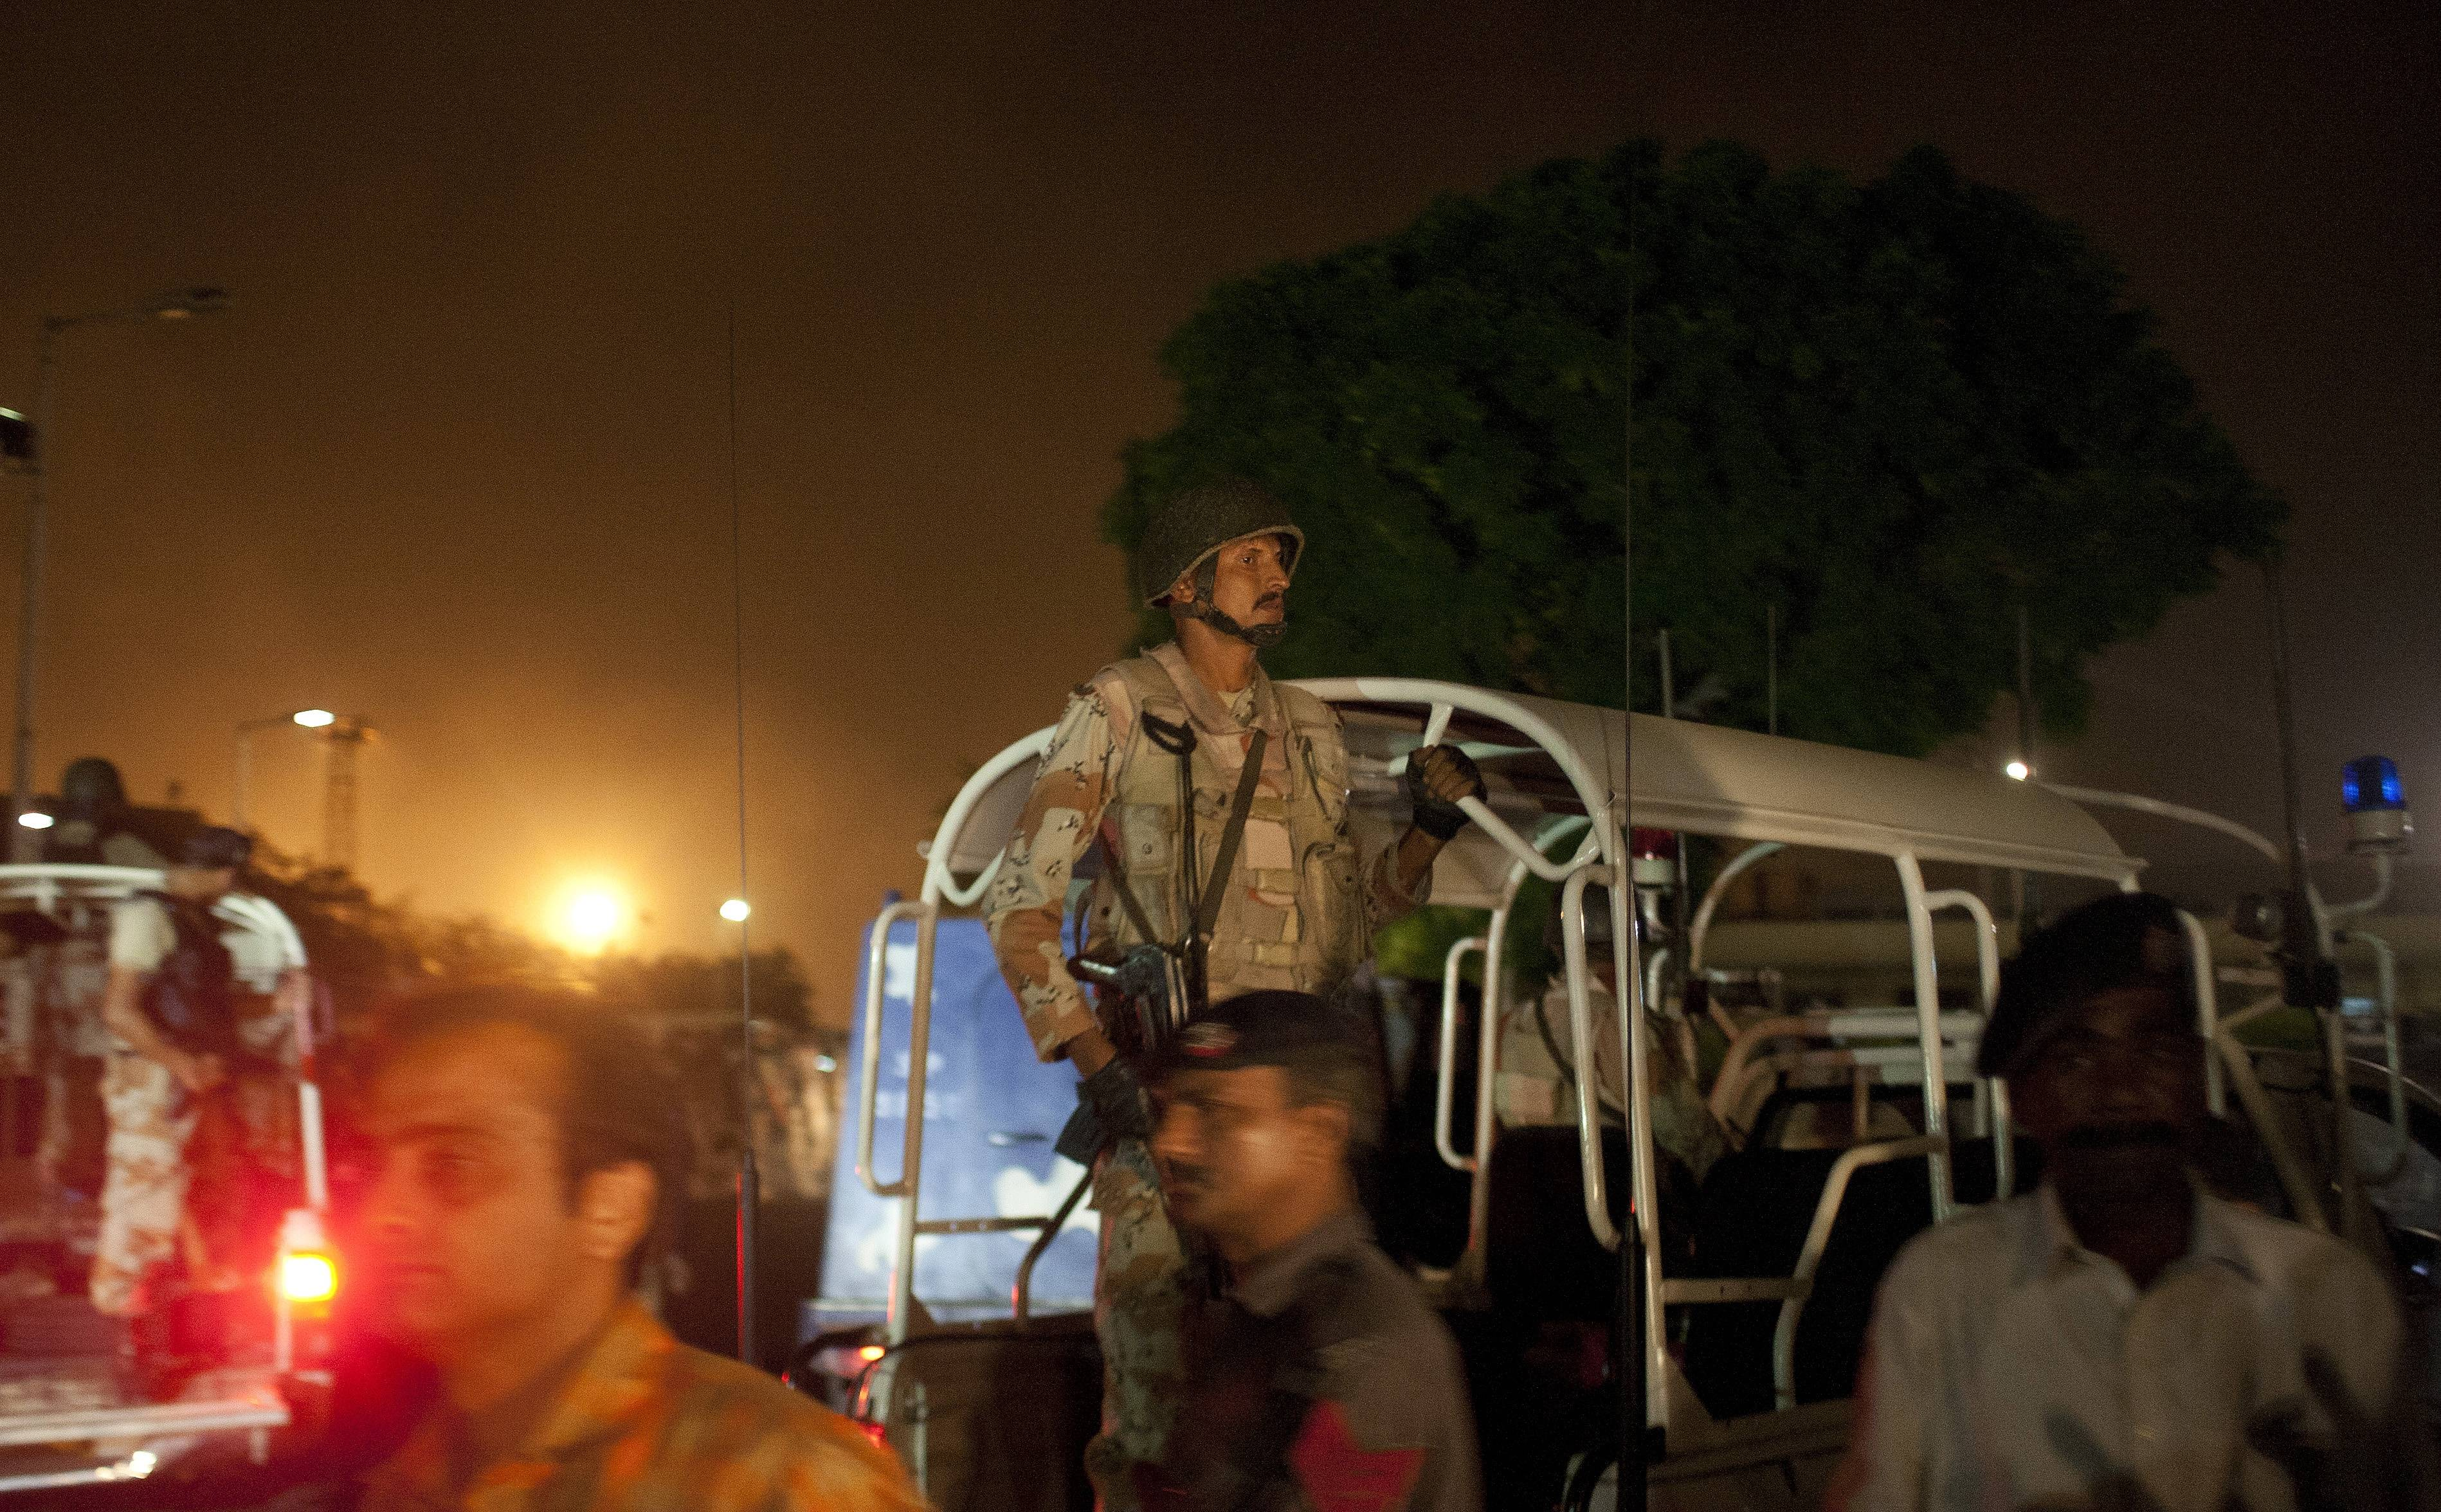 Pakistani security troops rush to Karachi airport terminal following attacks by unknown gunmen on Sunday night in Pakistan. Gunmen stormed an airport terminal used for VIPs and cargo in Pakistan's largest city on Sunday night, killing and wounding scores of people, officials said.